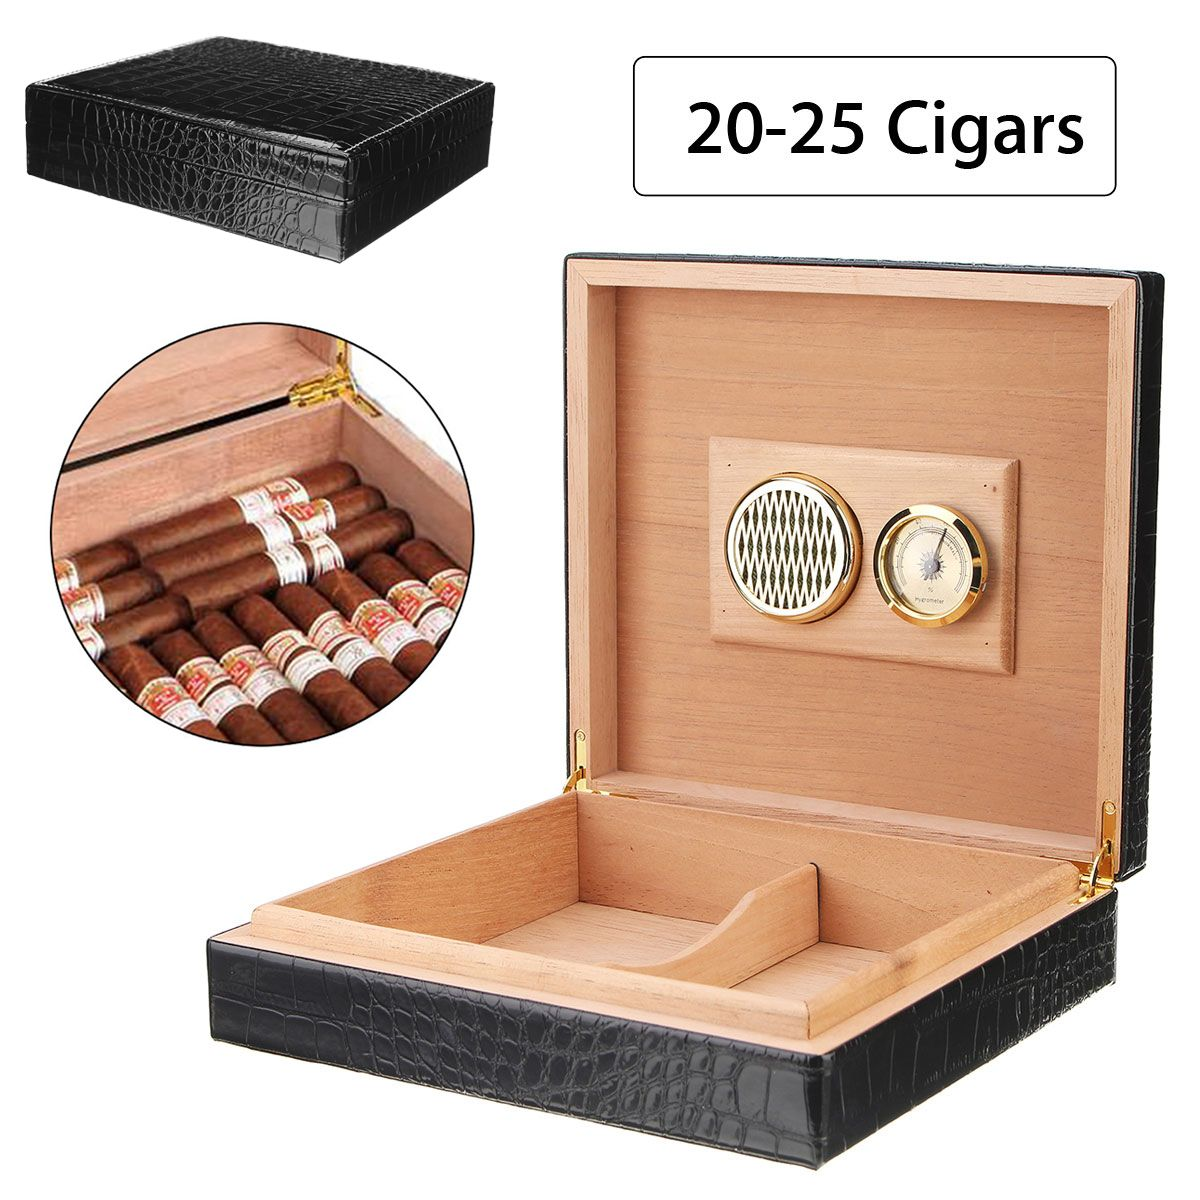 YKPuii Black Cedar Wood Cigar Case 20 - 25 Cigars Storage Case Box with Hygrometer Humidifier Smoking Accessories